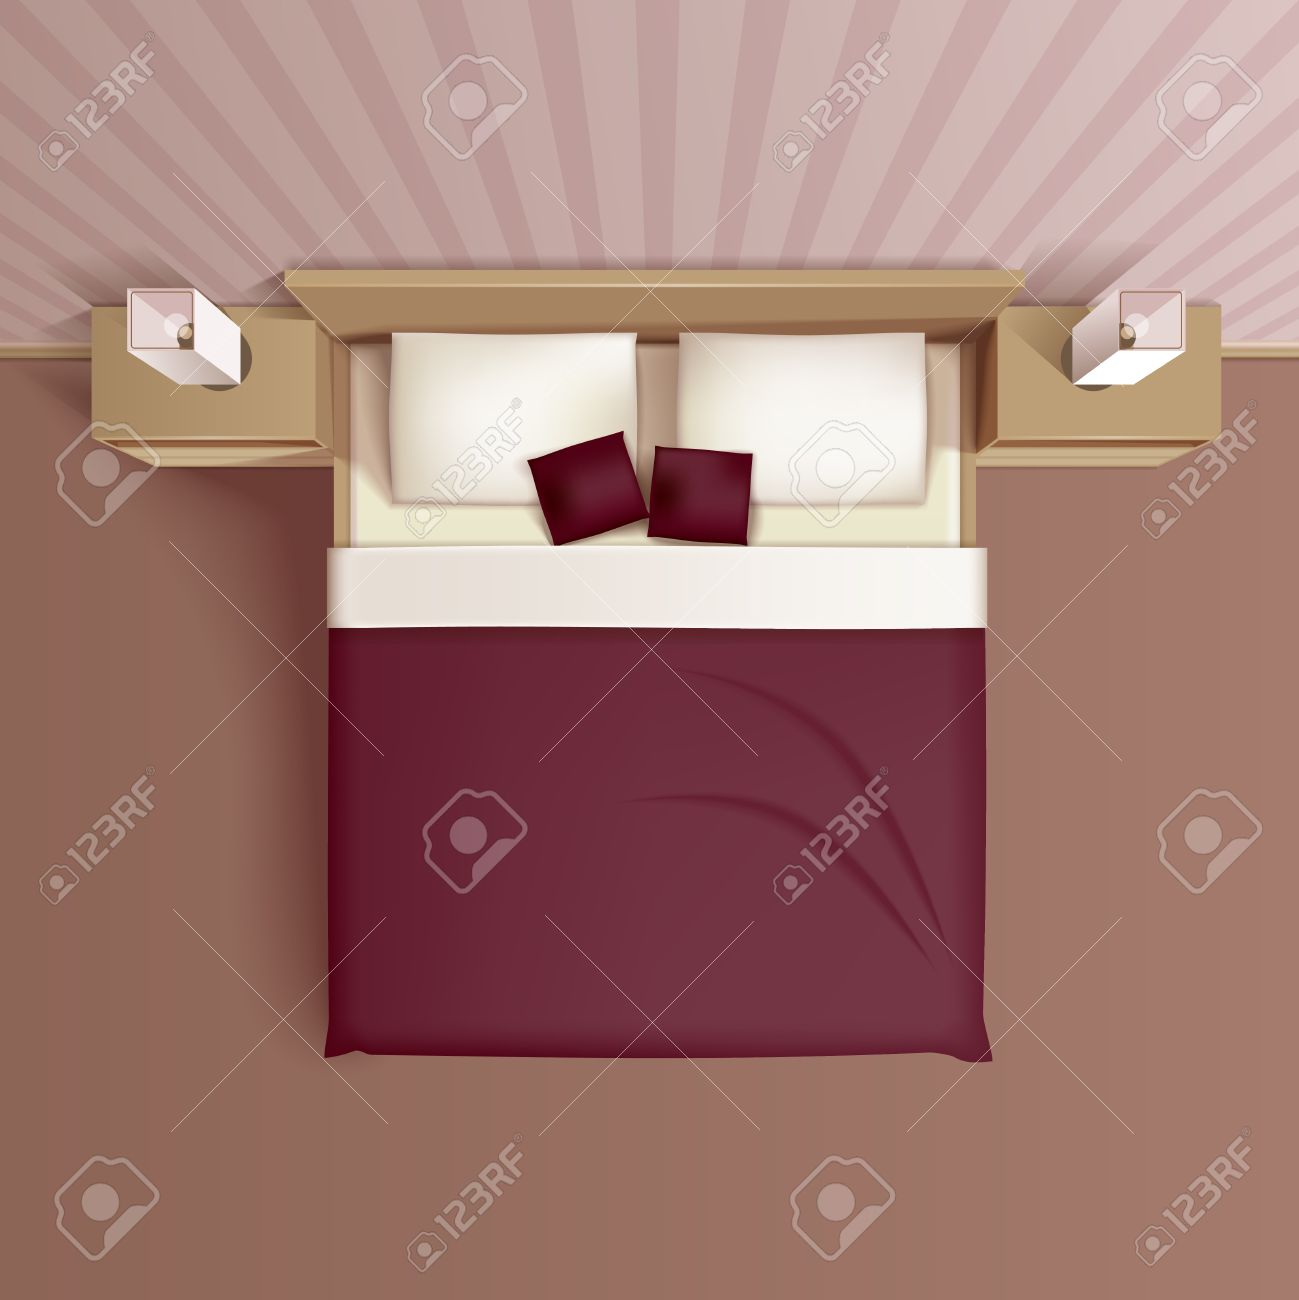 Bed Headboard Classic Family Bedroom Interior Design With Comfortable Bed Headboard